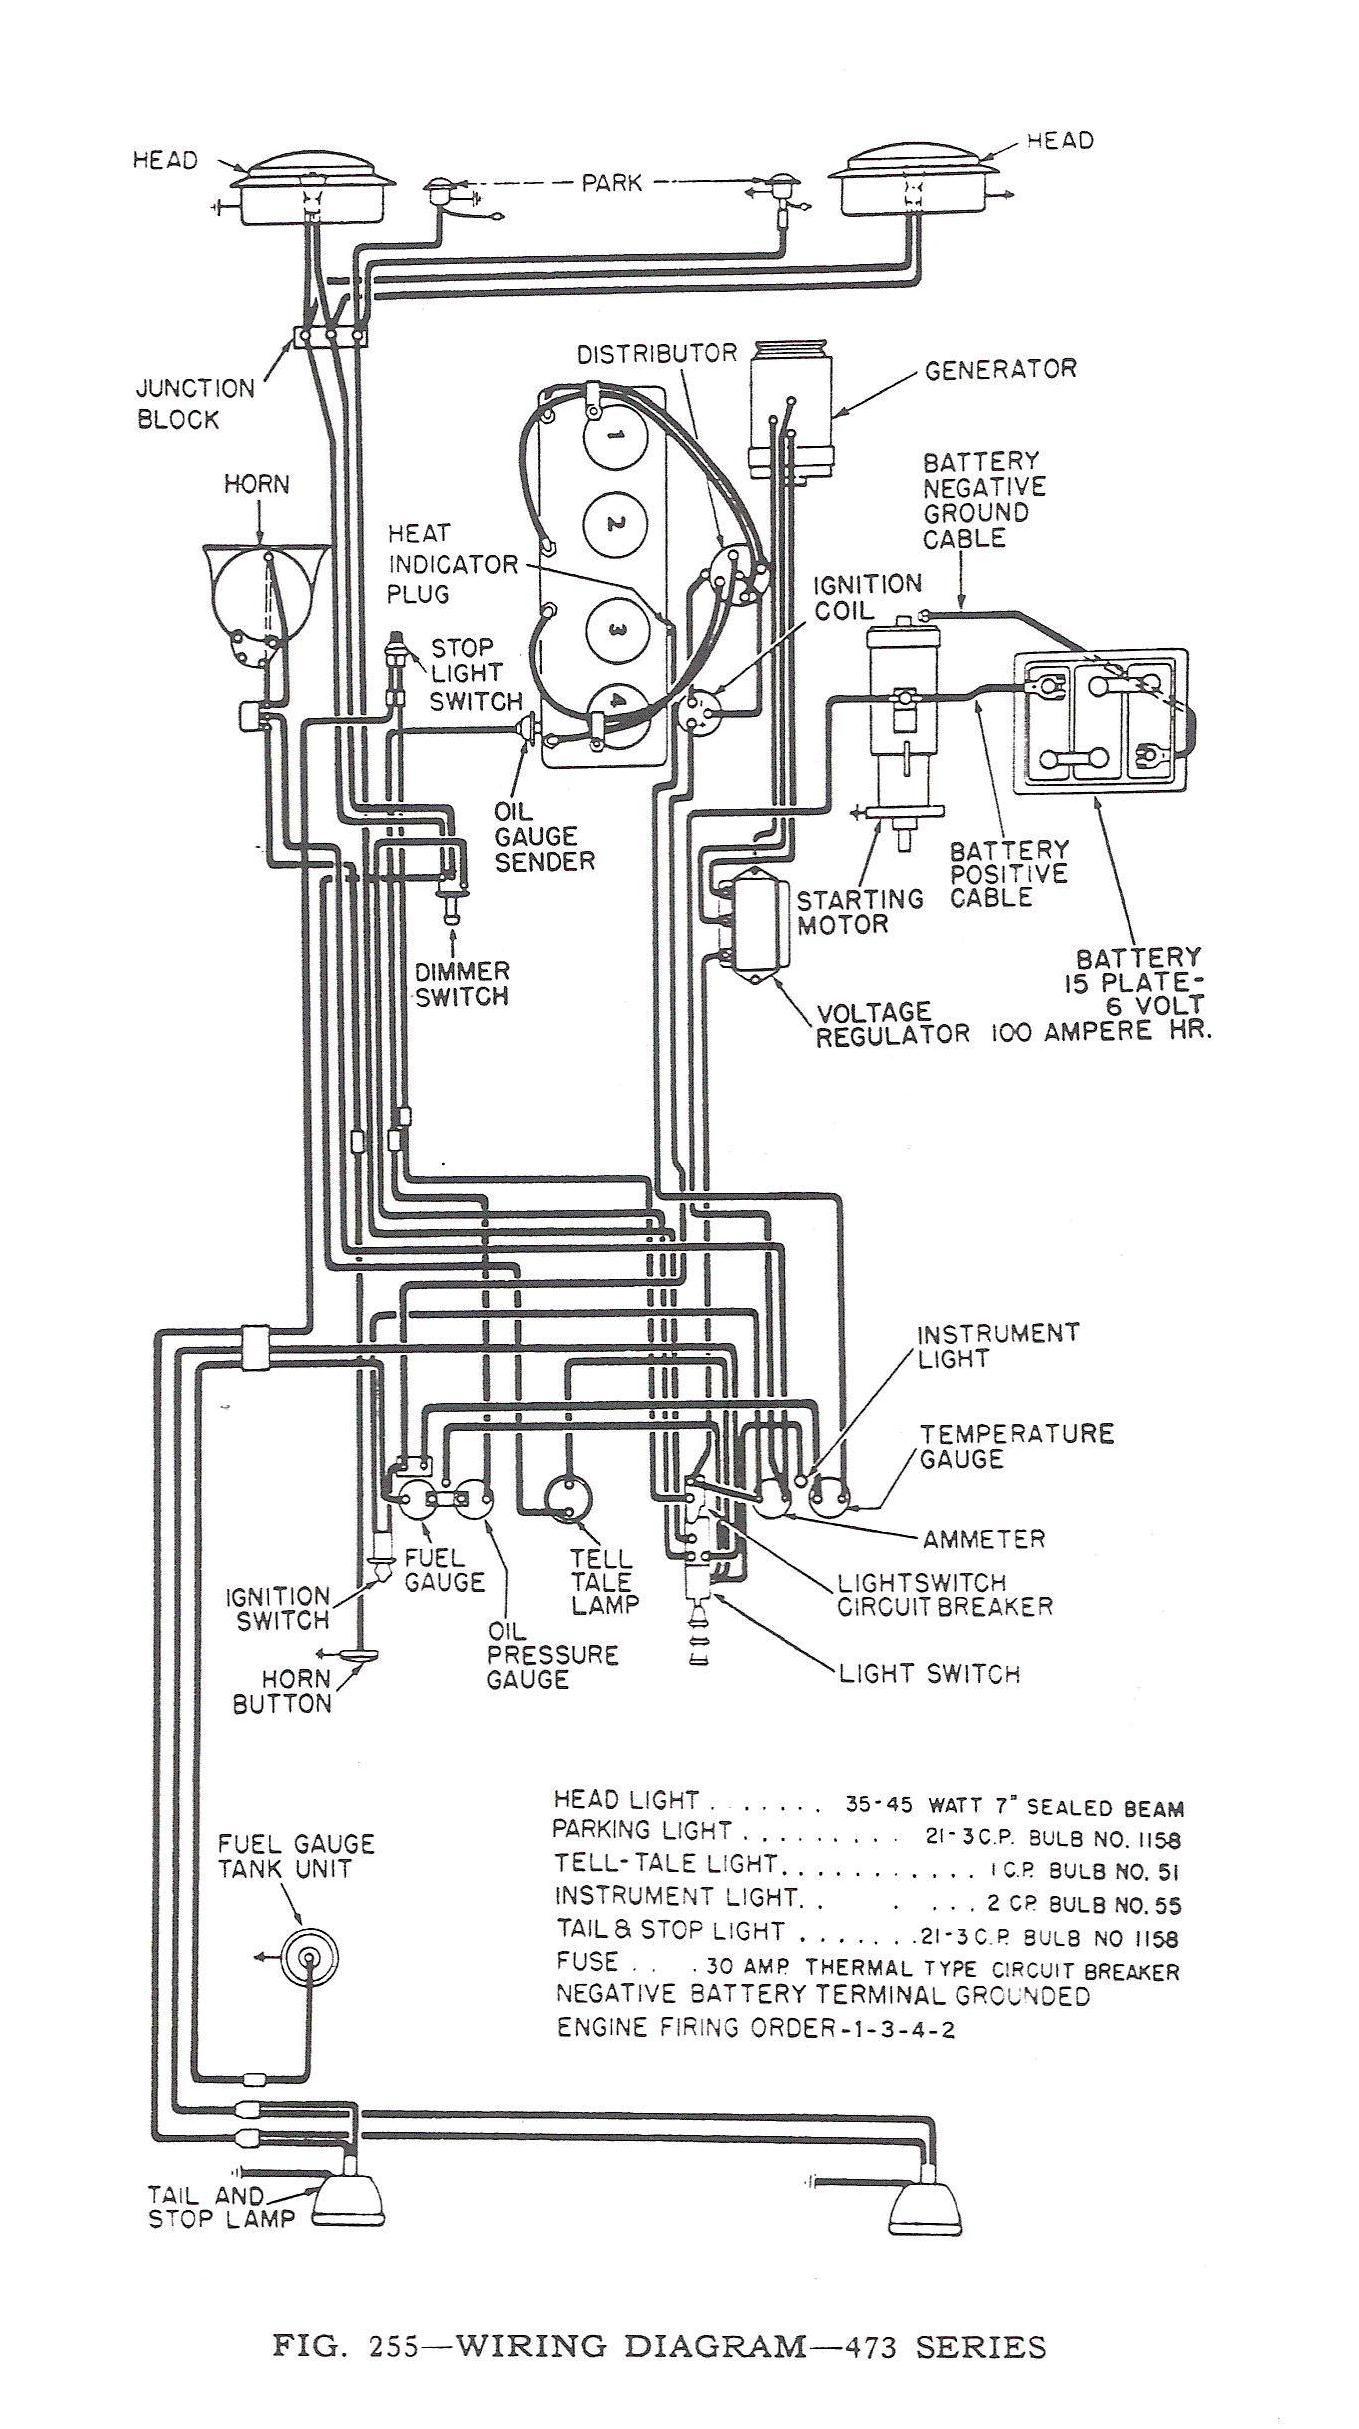 L134 Engine Diagram